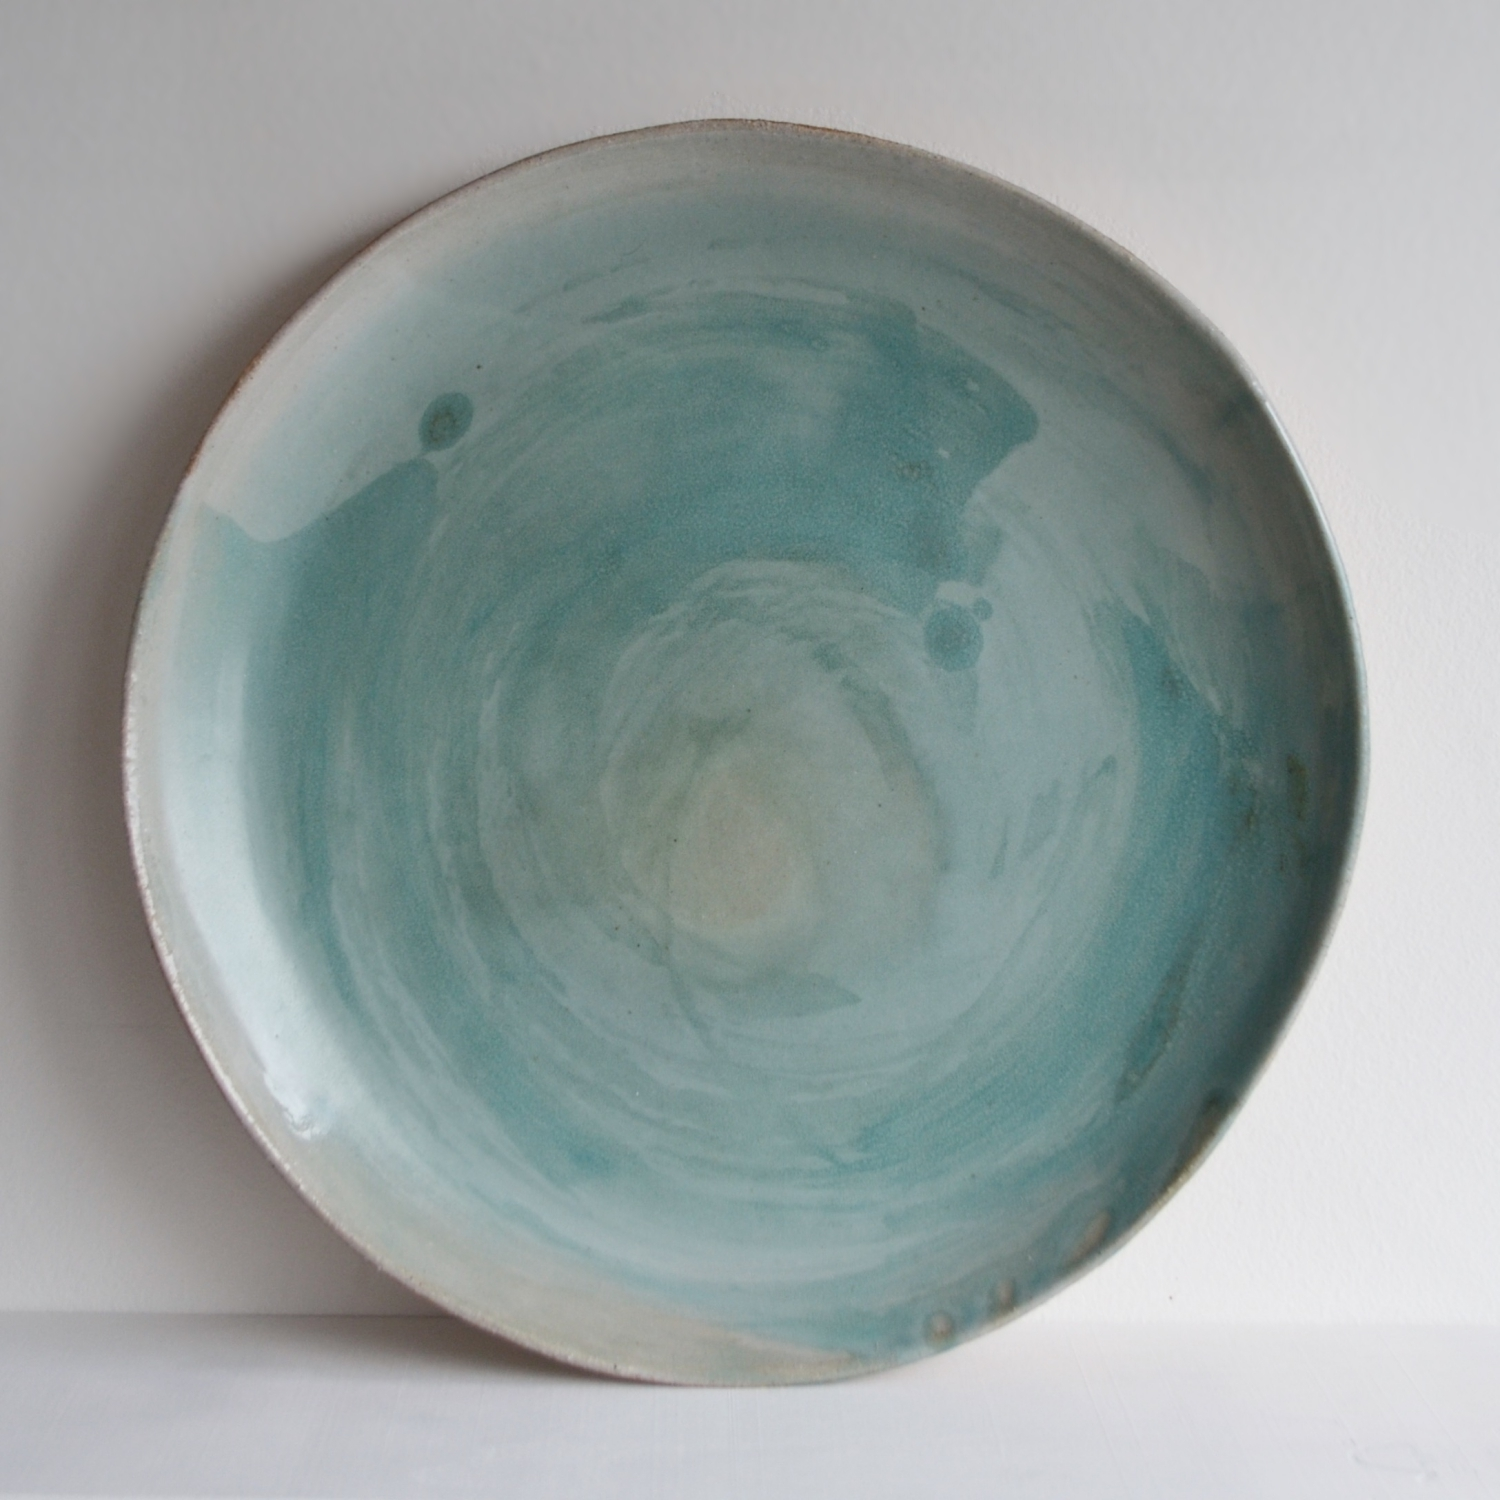 Light Tuinn Plate  ceramic  3 x 26 cm  £48